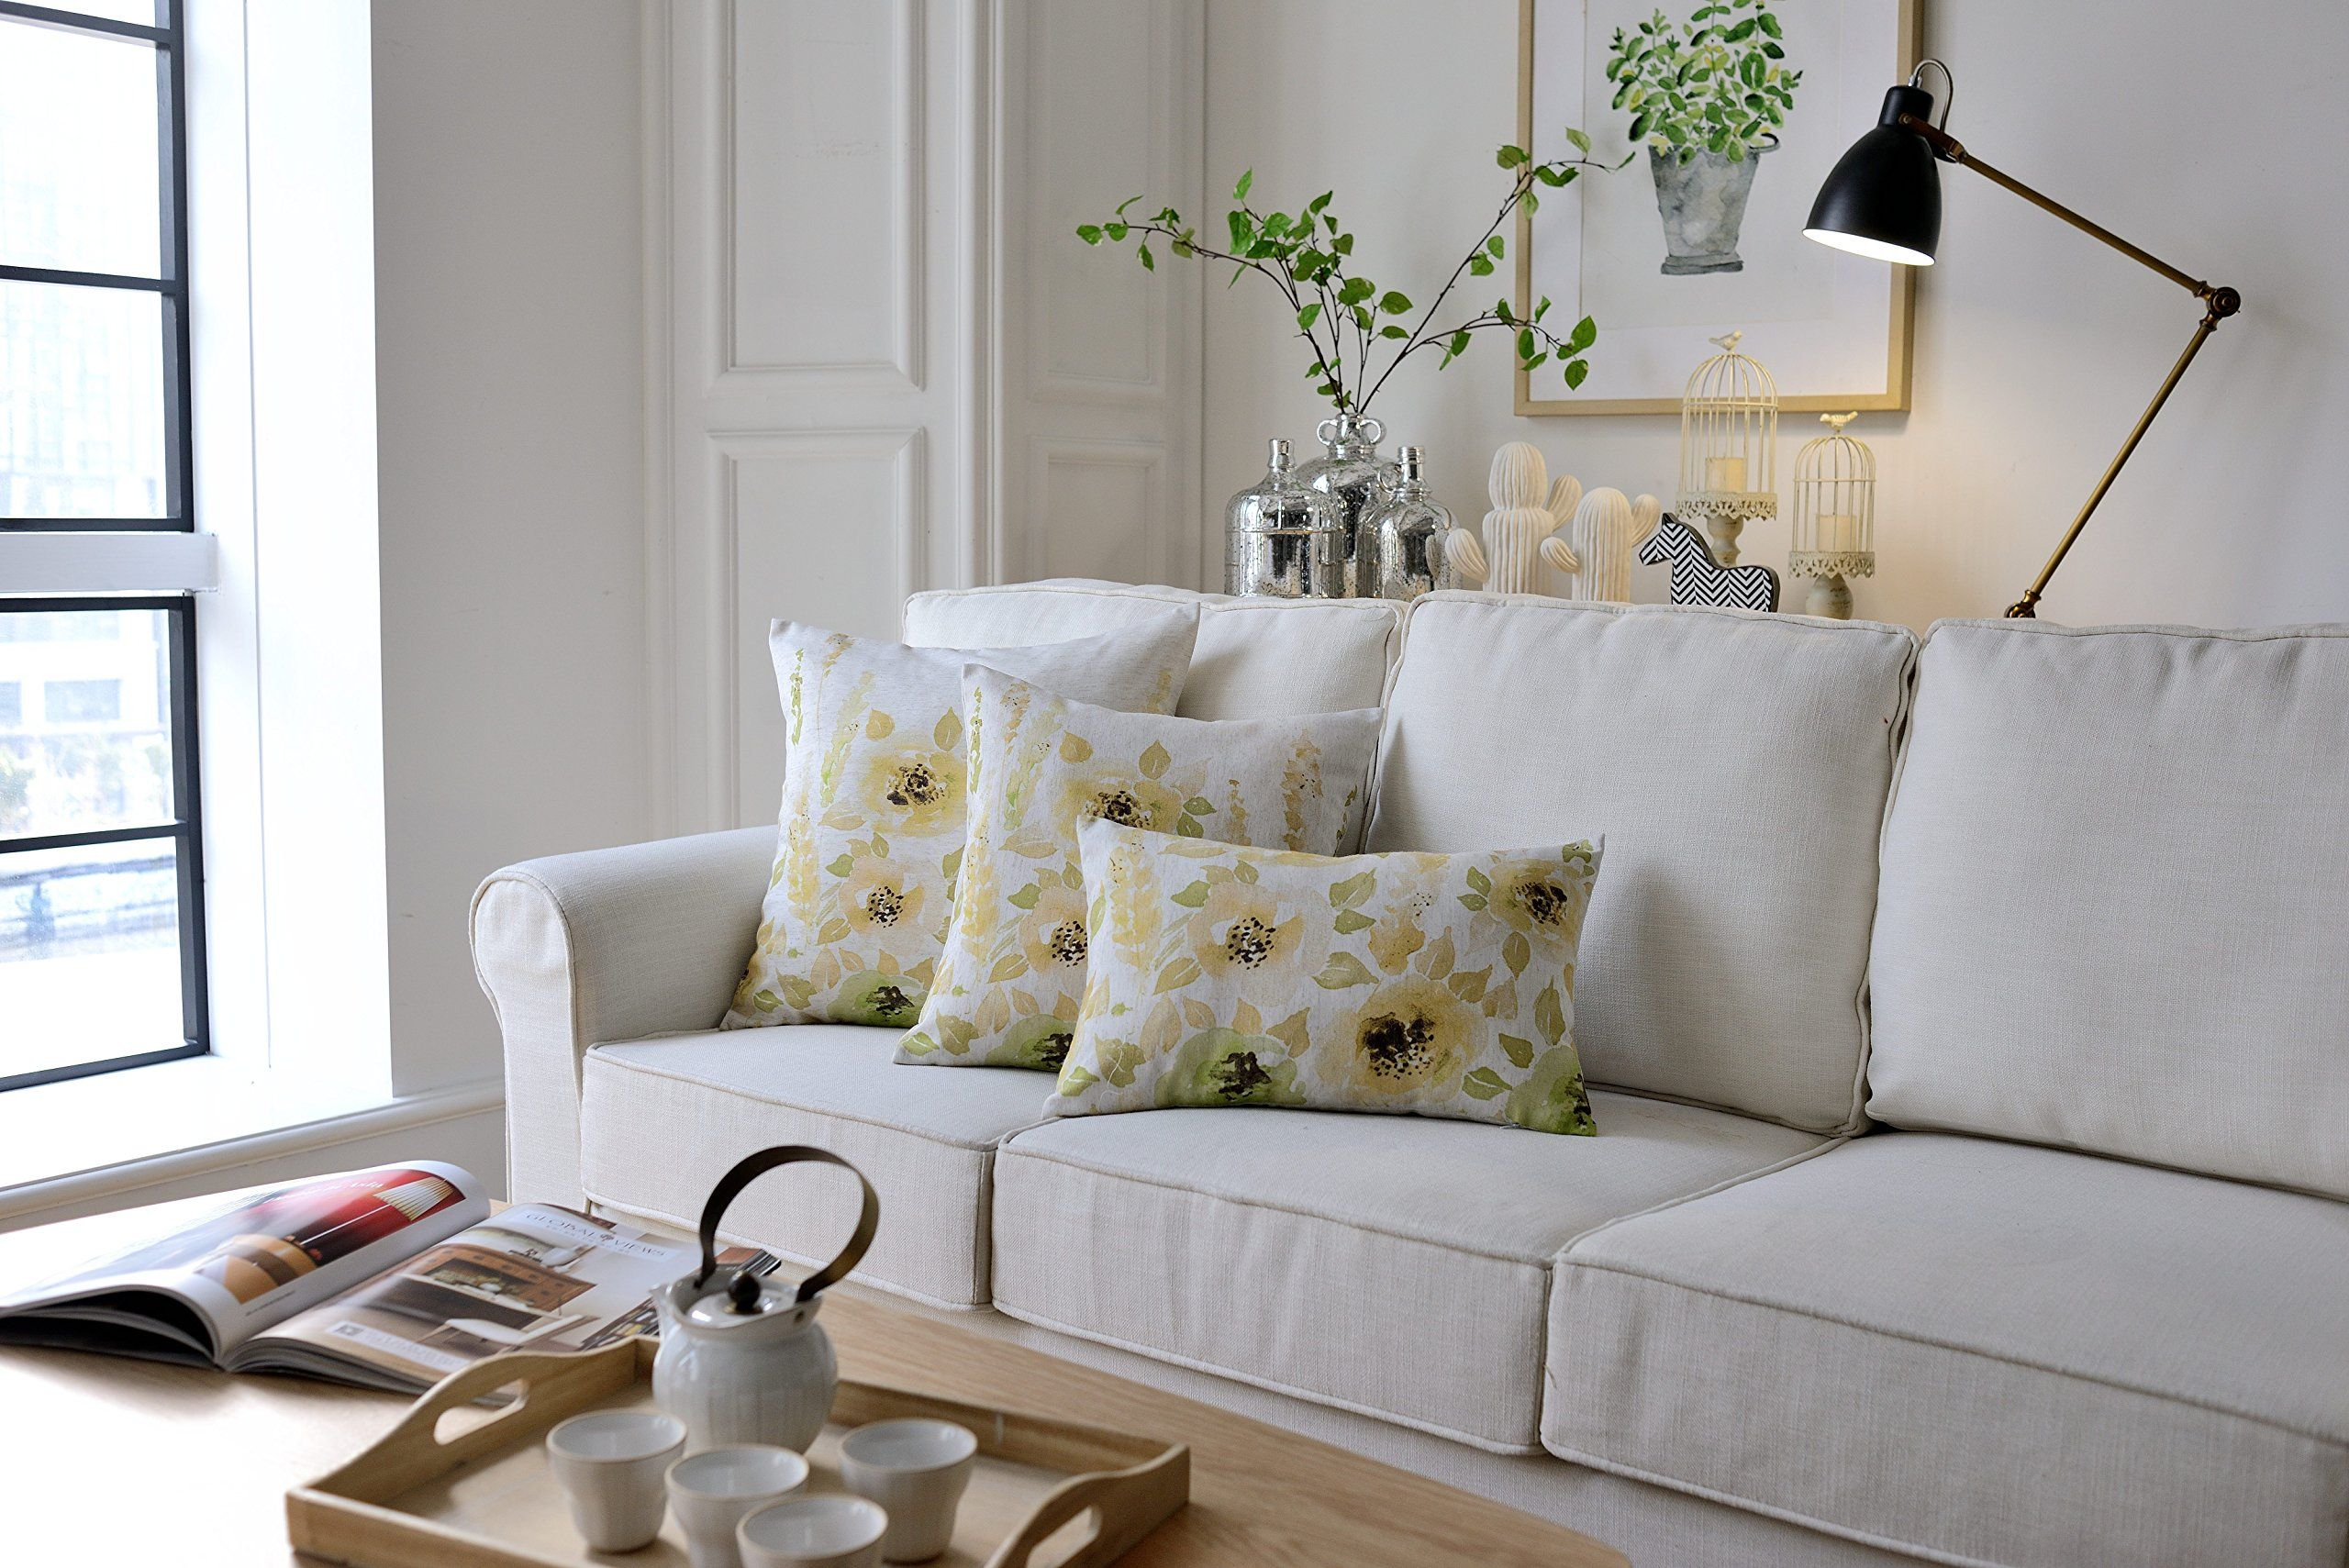 Remarkable Mysky Home Set Of 3 Floral Design Print Cushion Covers Sofa Pabps2019 Chair Design Images Pabps2019Com